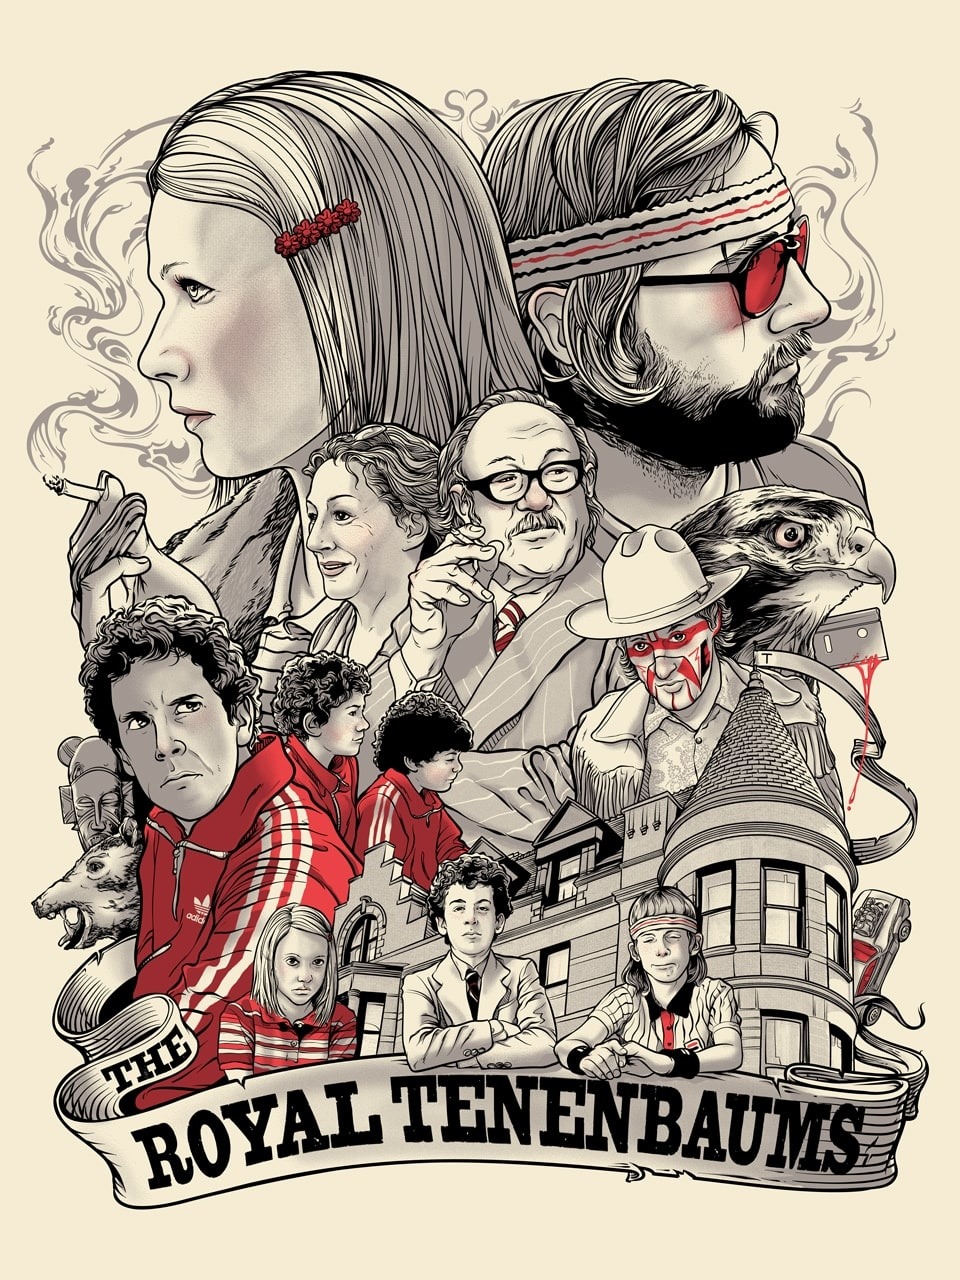 091012_joshuabudich_royaltenenbaums-preview